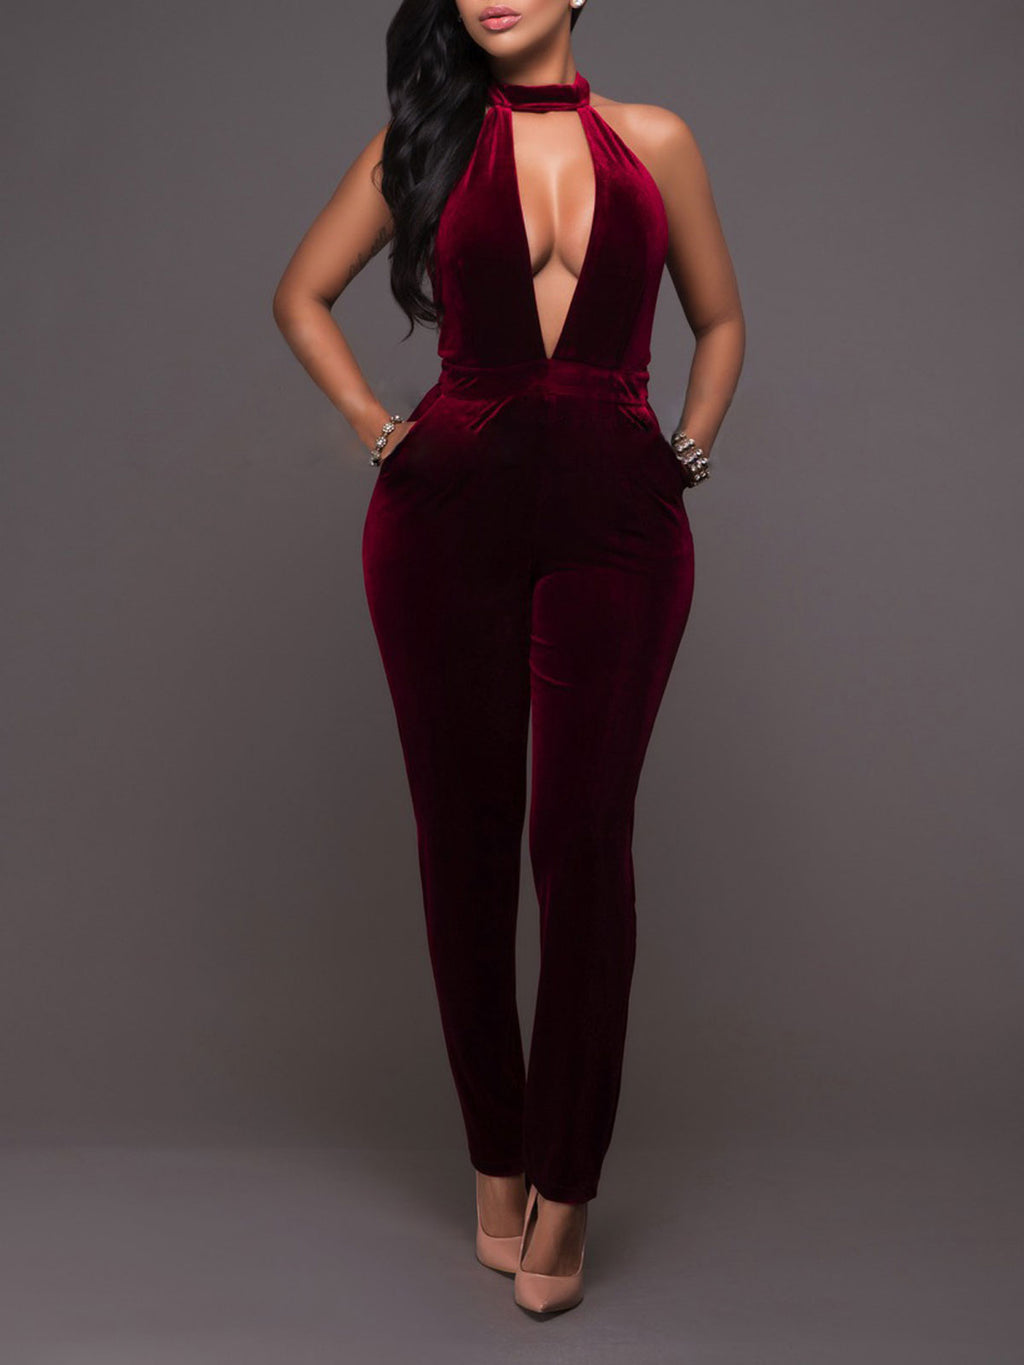 2019 Sexy Wine Red Hunter Holiday Party Dating Halter Hollow Jumpsuits & Rompers Rikkishop